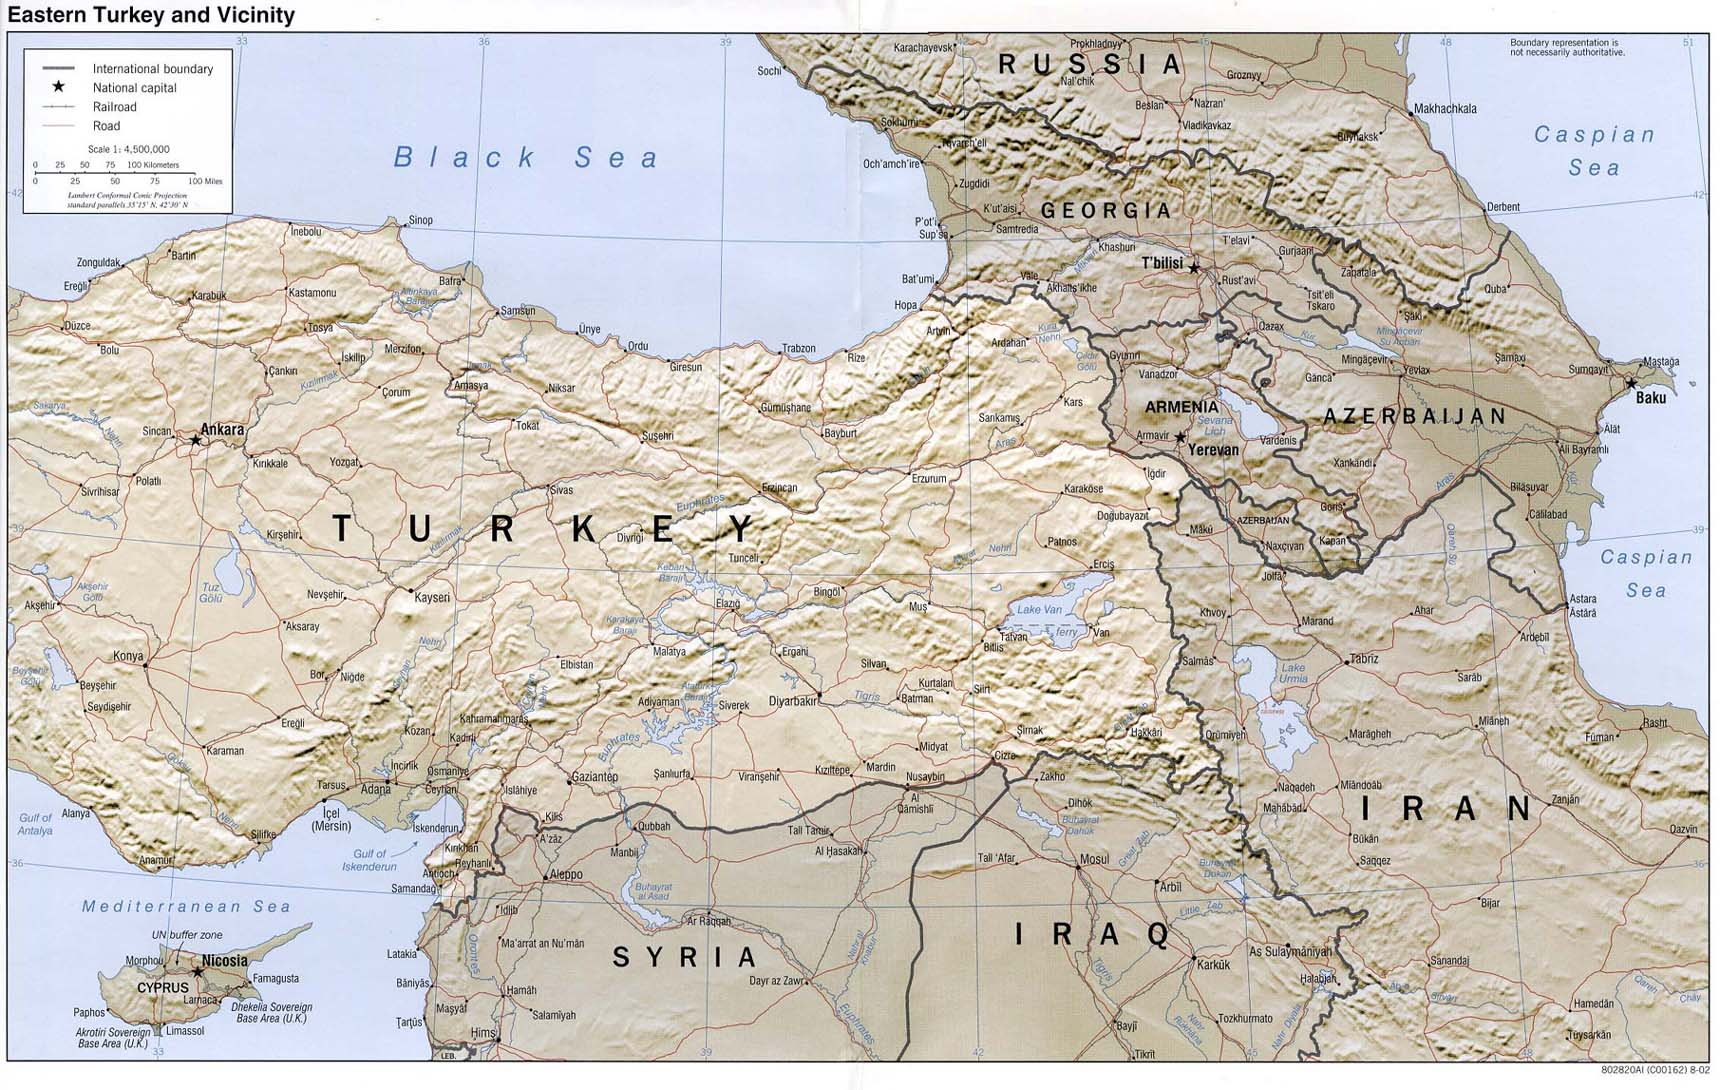 Eastern Turkey and Vicinity Shaded Relief Map